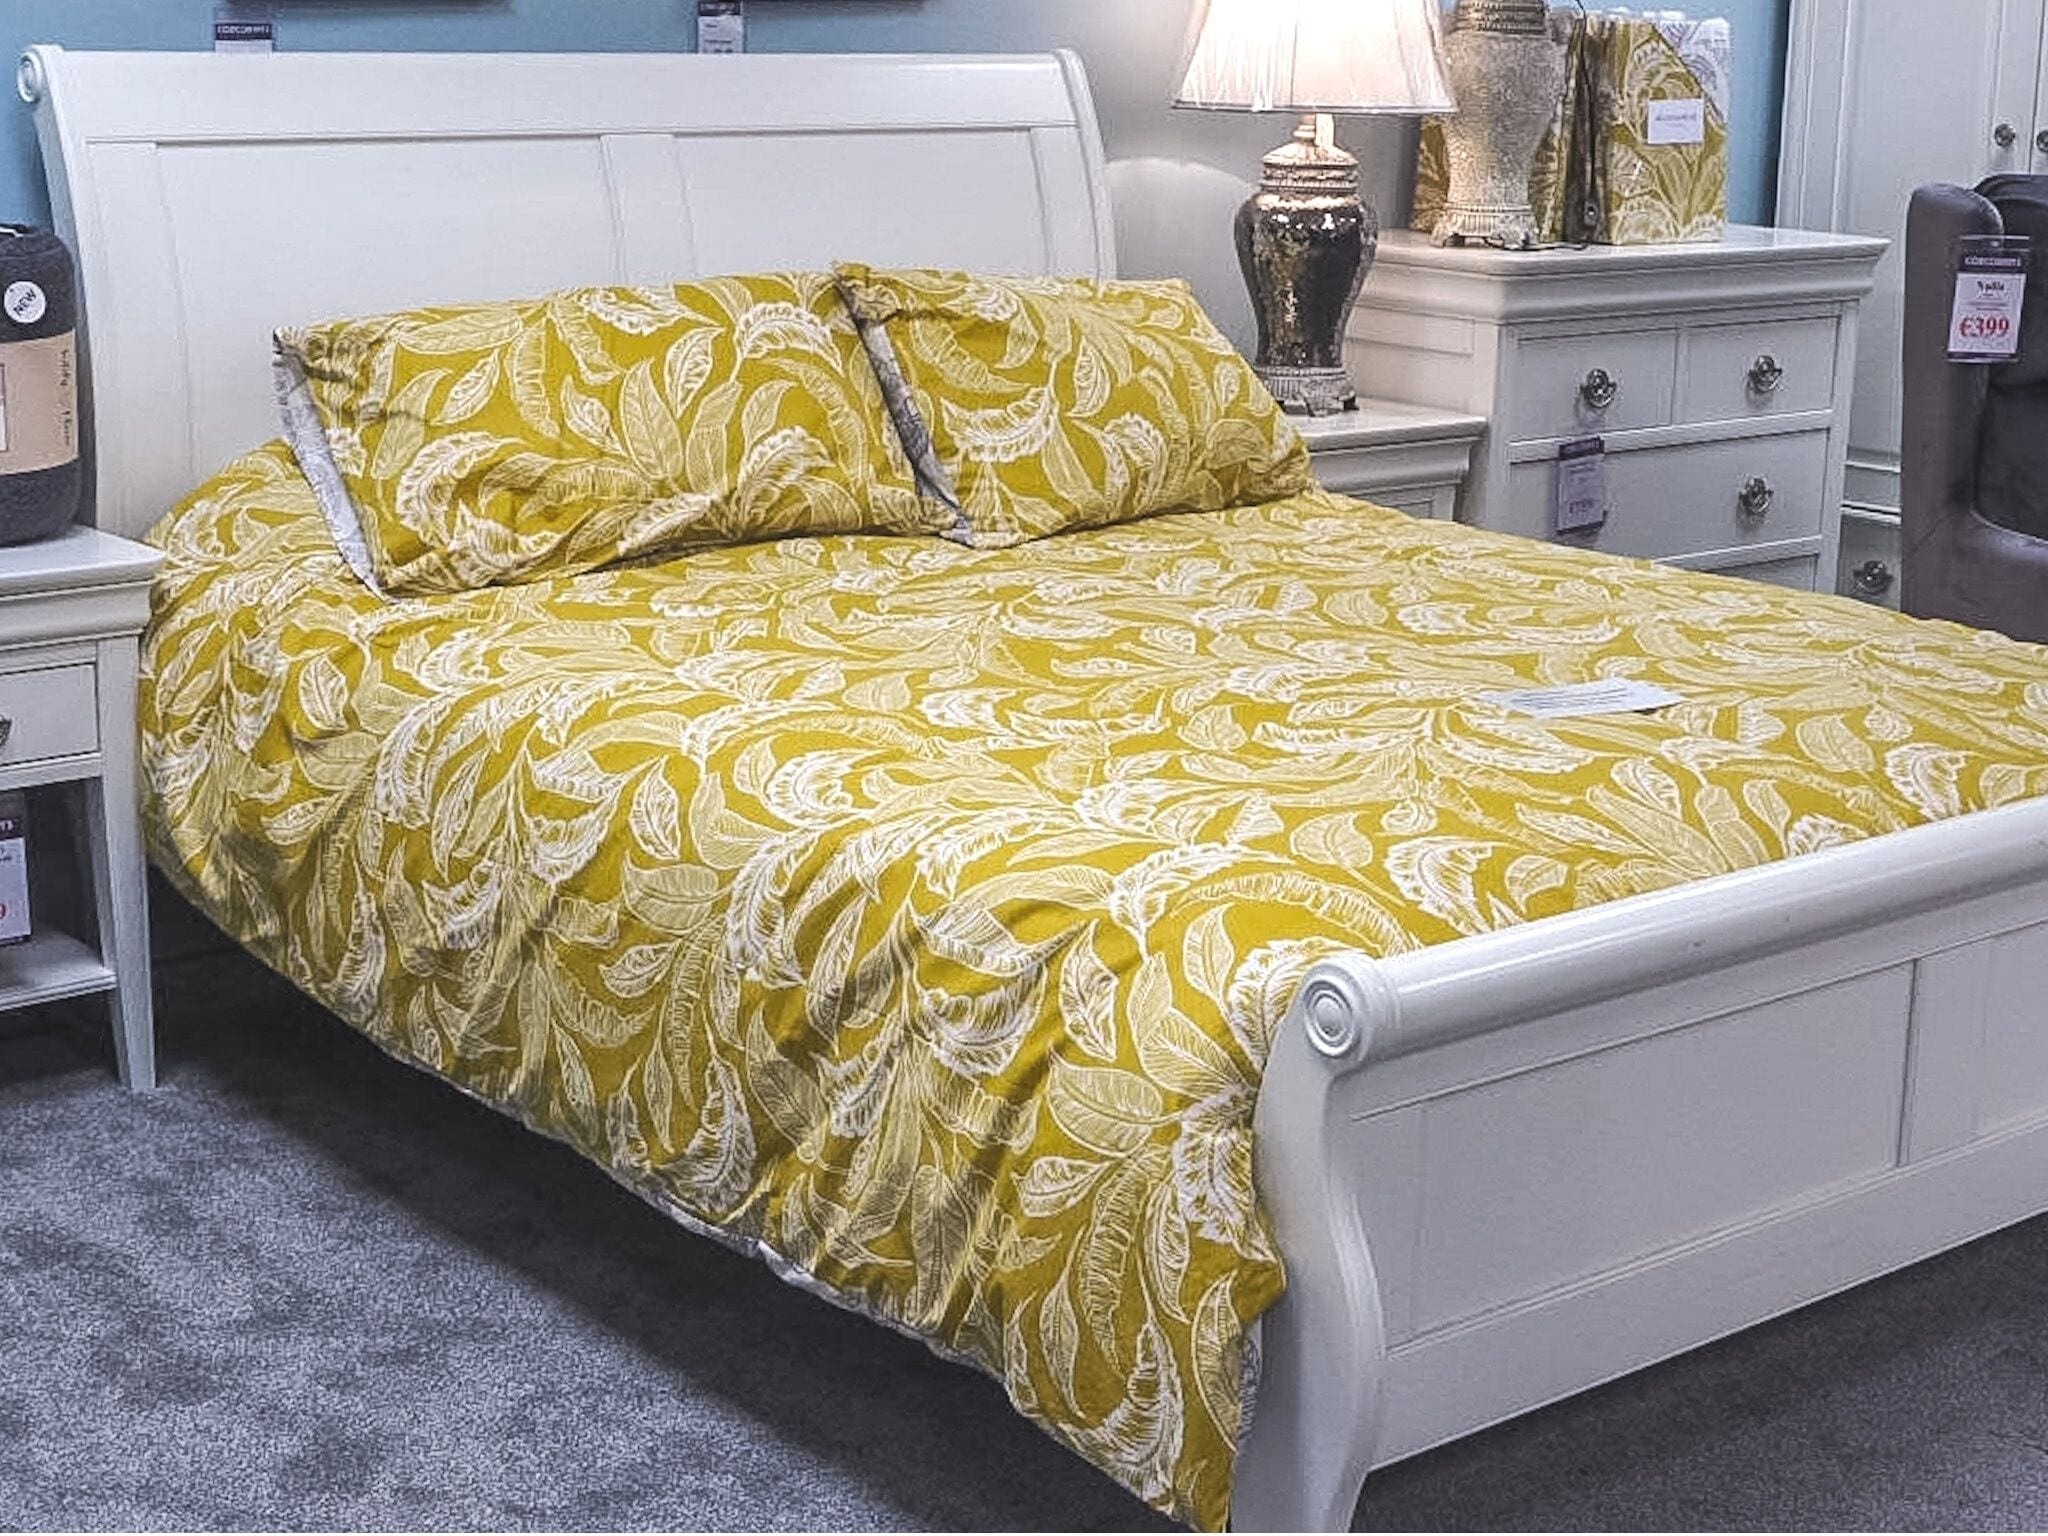 Chanel White Bed Frame with Accessorize London King Quilt Cover